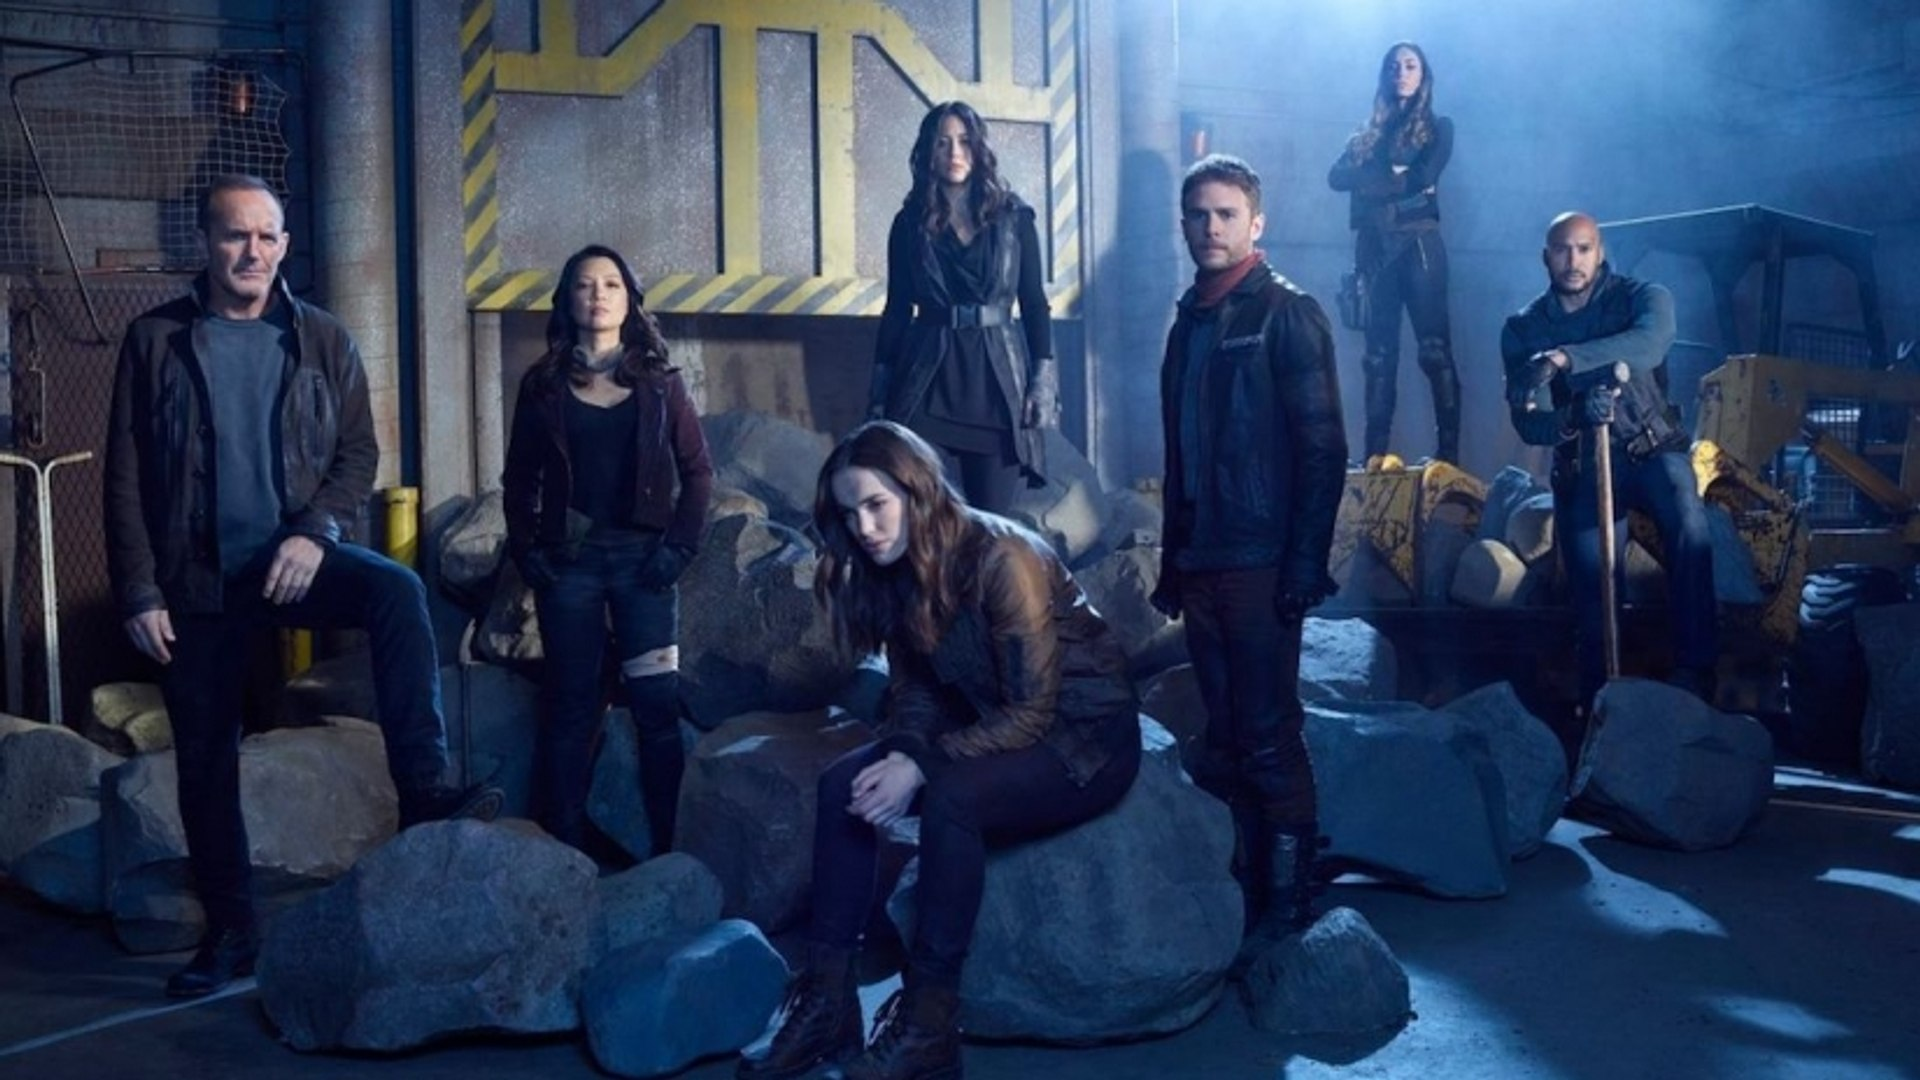 Agents of Shield: Will there be a season 8?